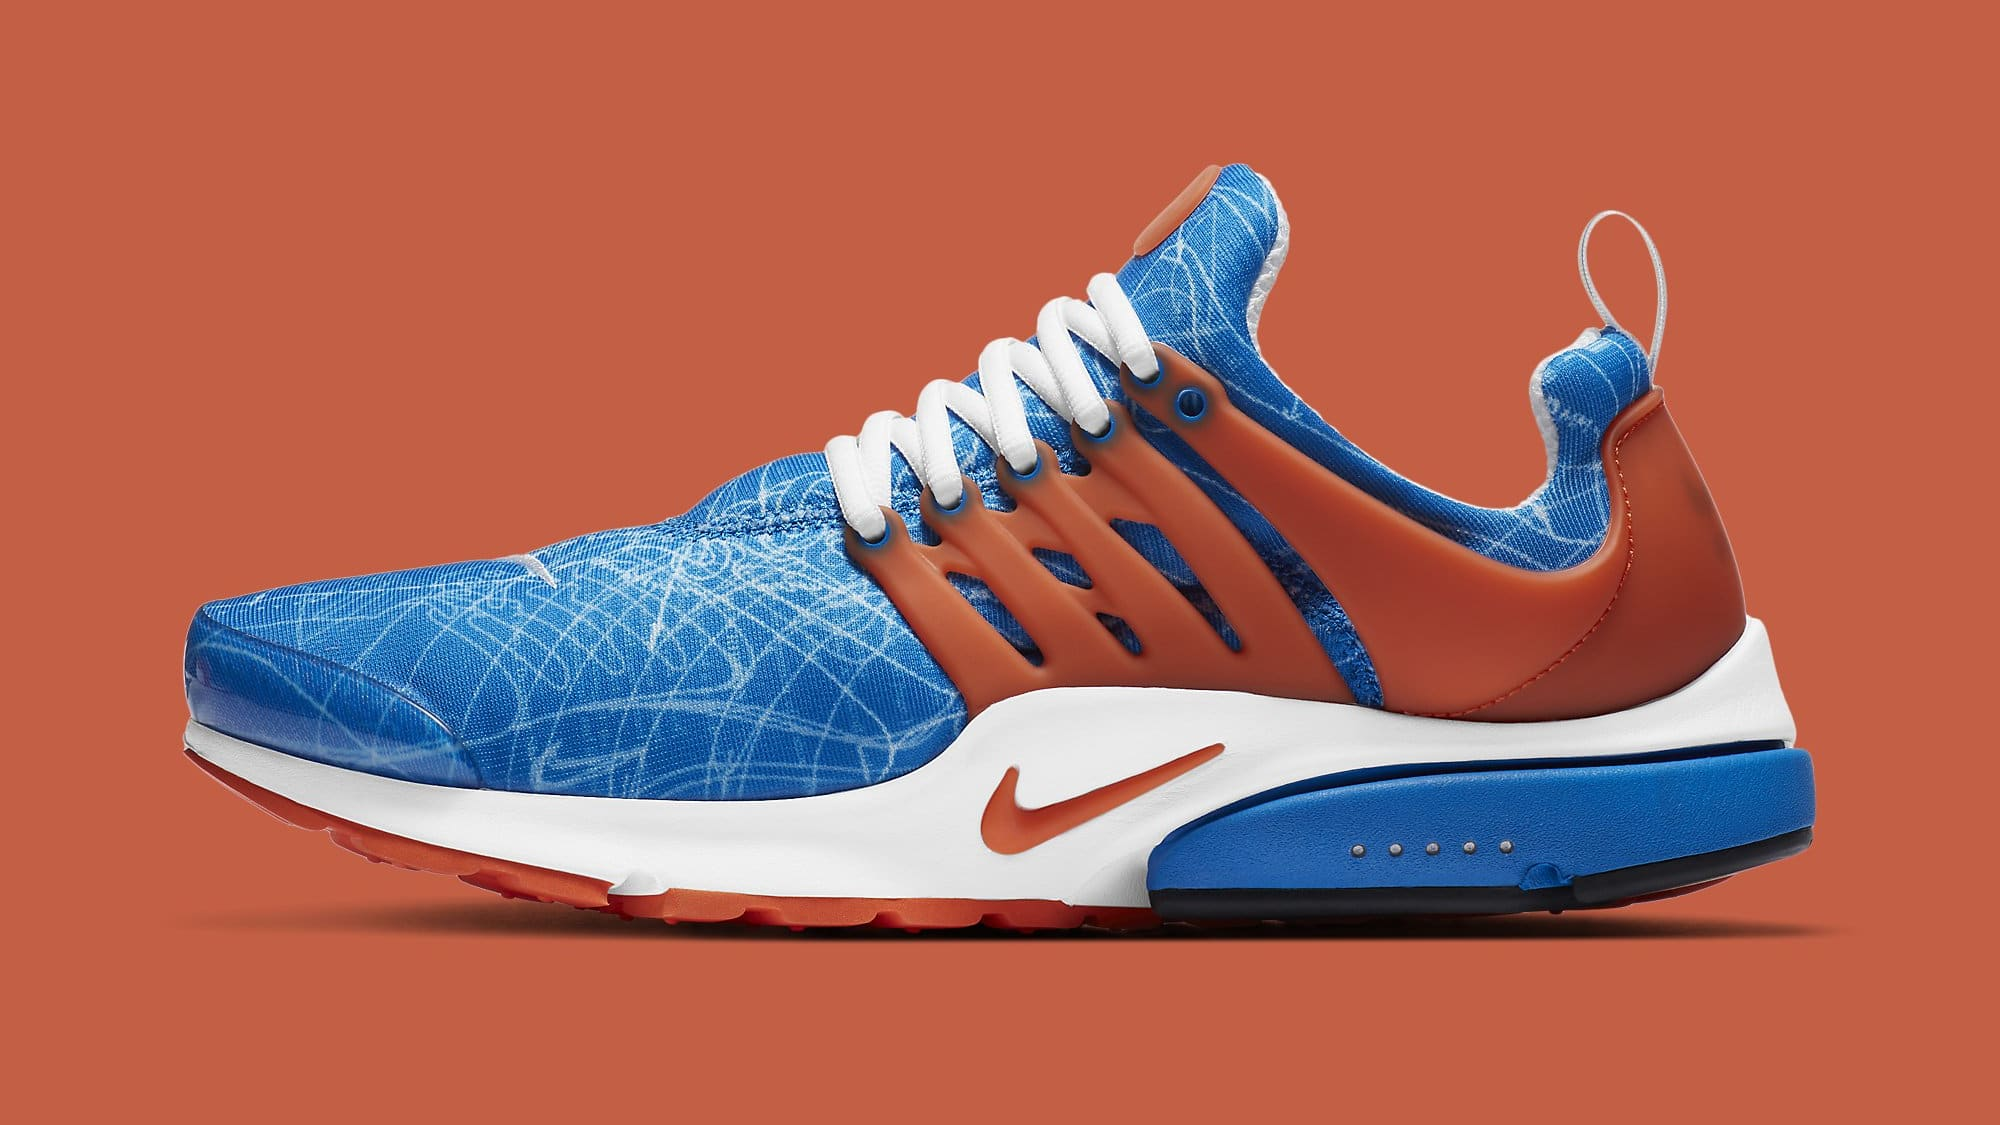 Nike Air Presto 'Soar' CJ1229-401 Lateral